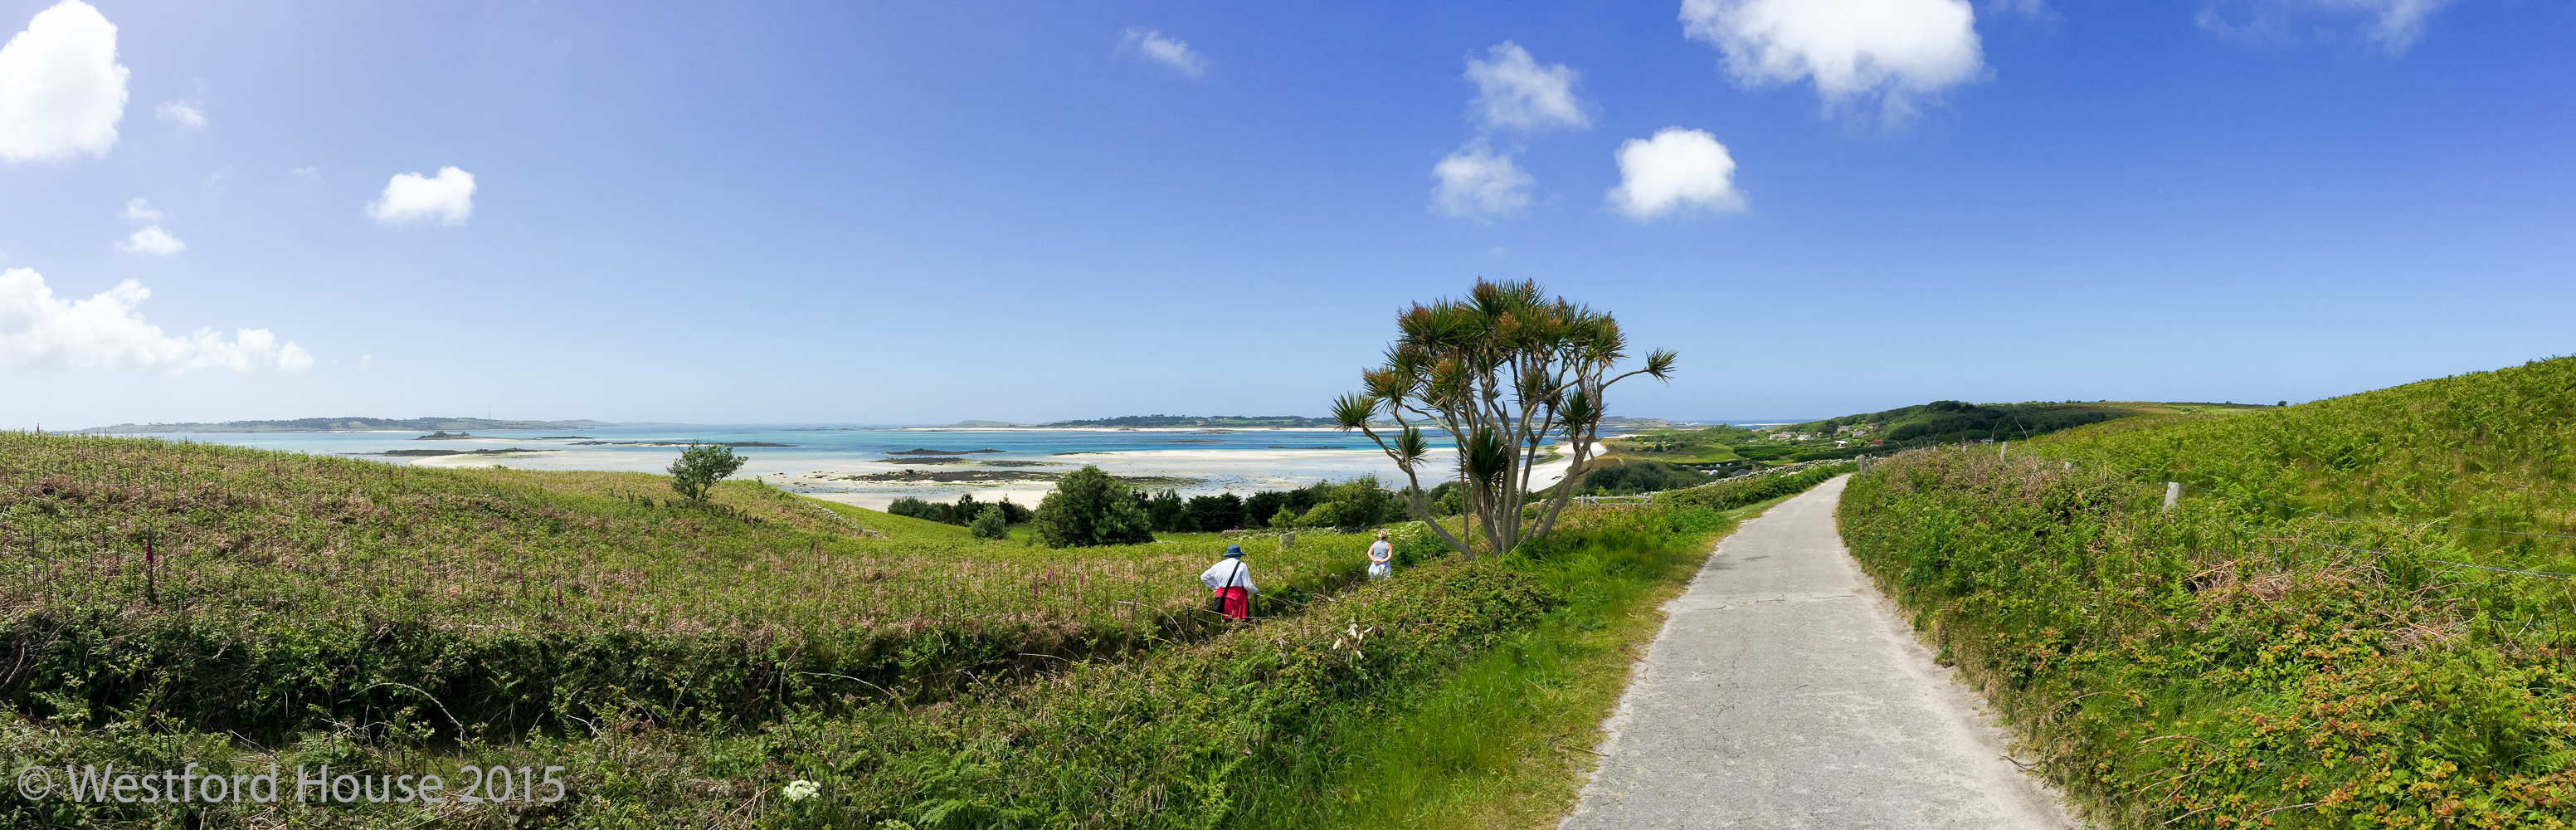 Bed And Breakfast St Martins Isles Of Scilly